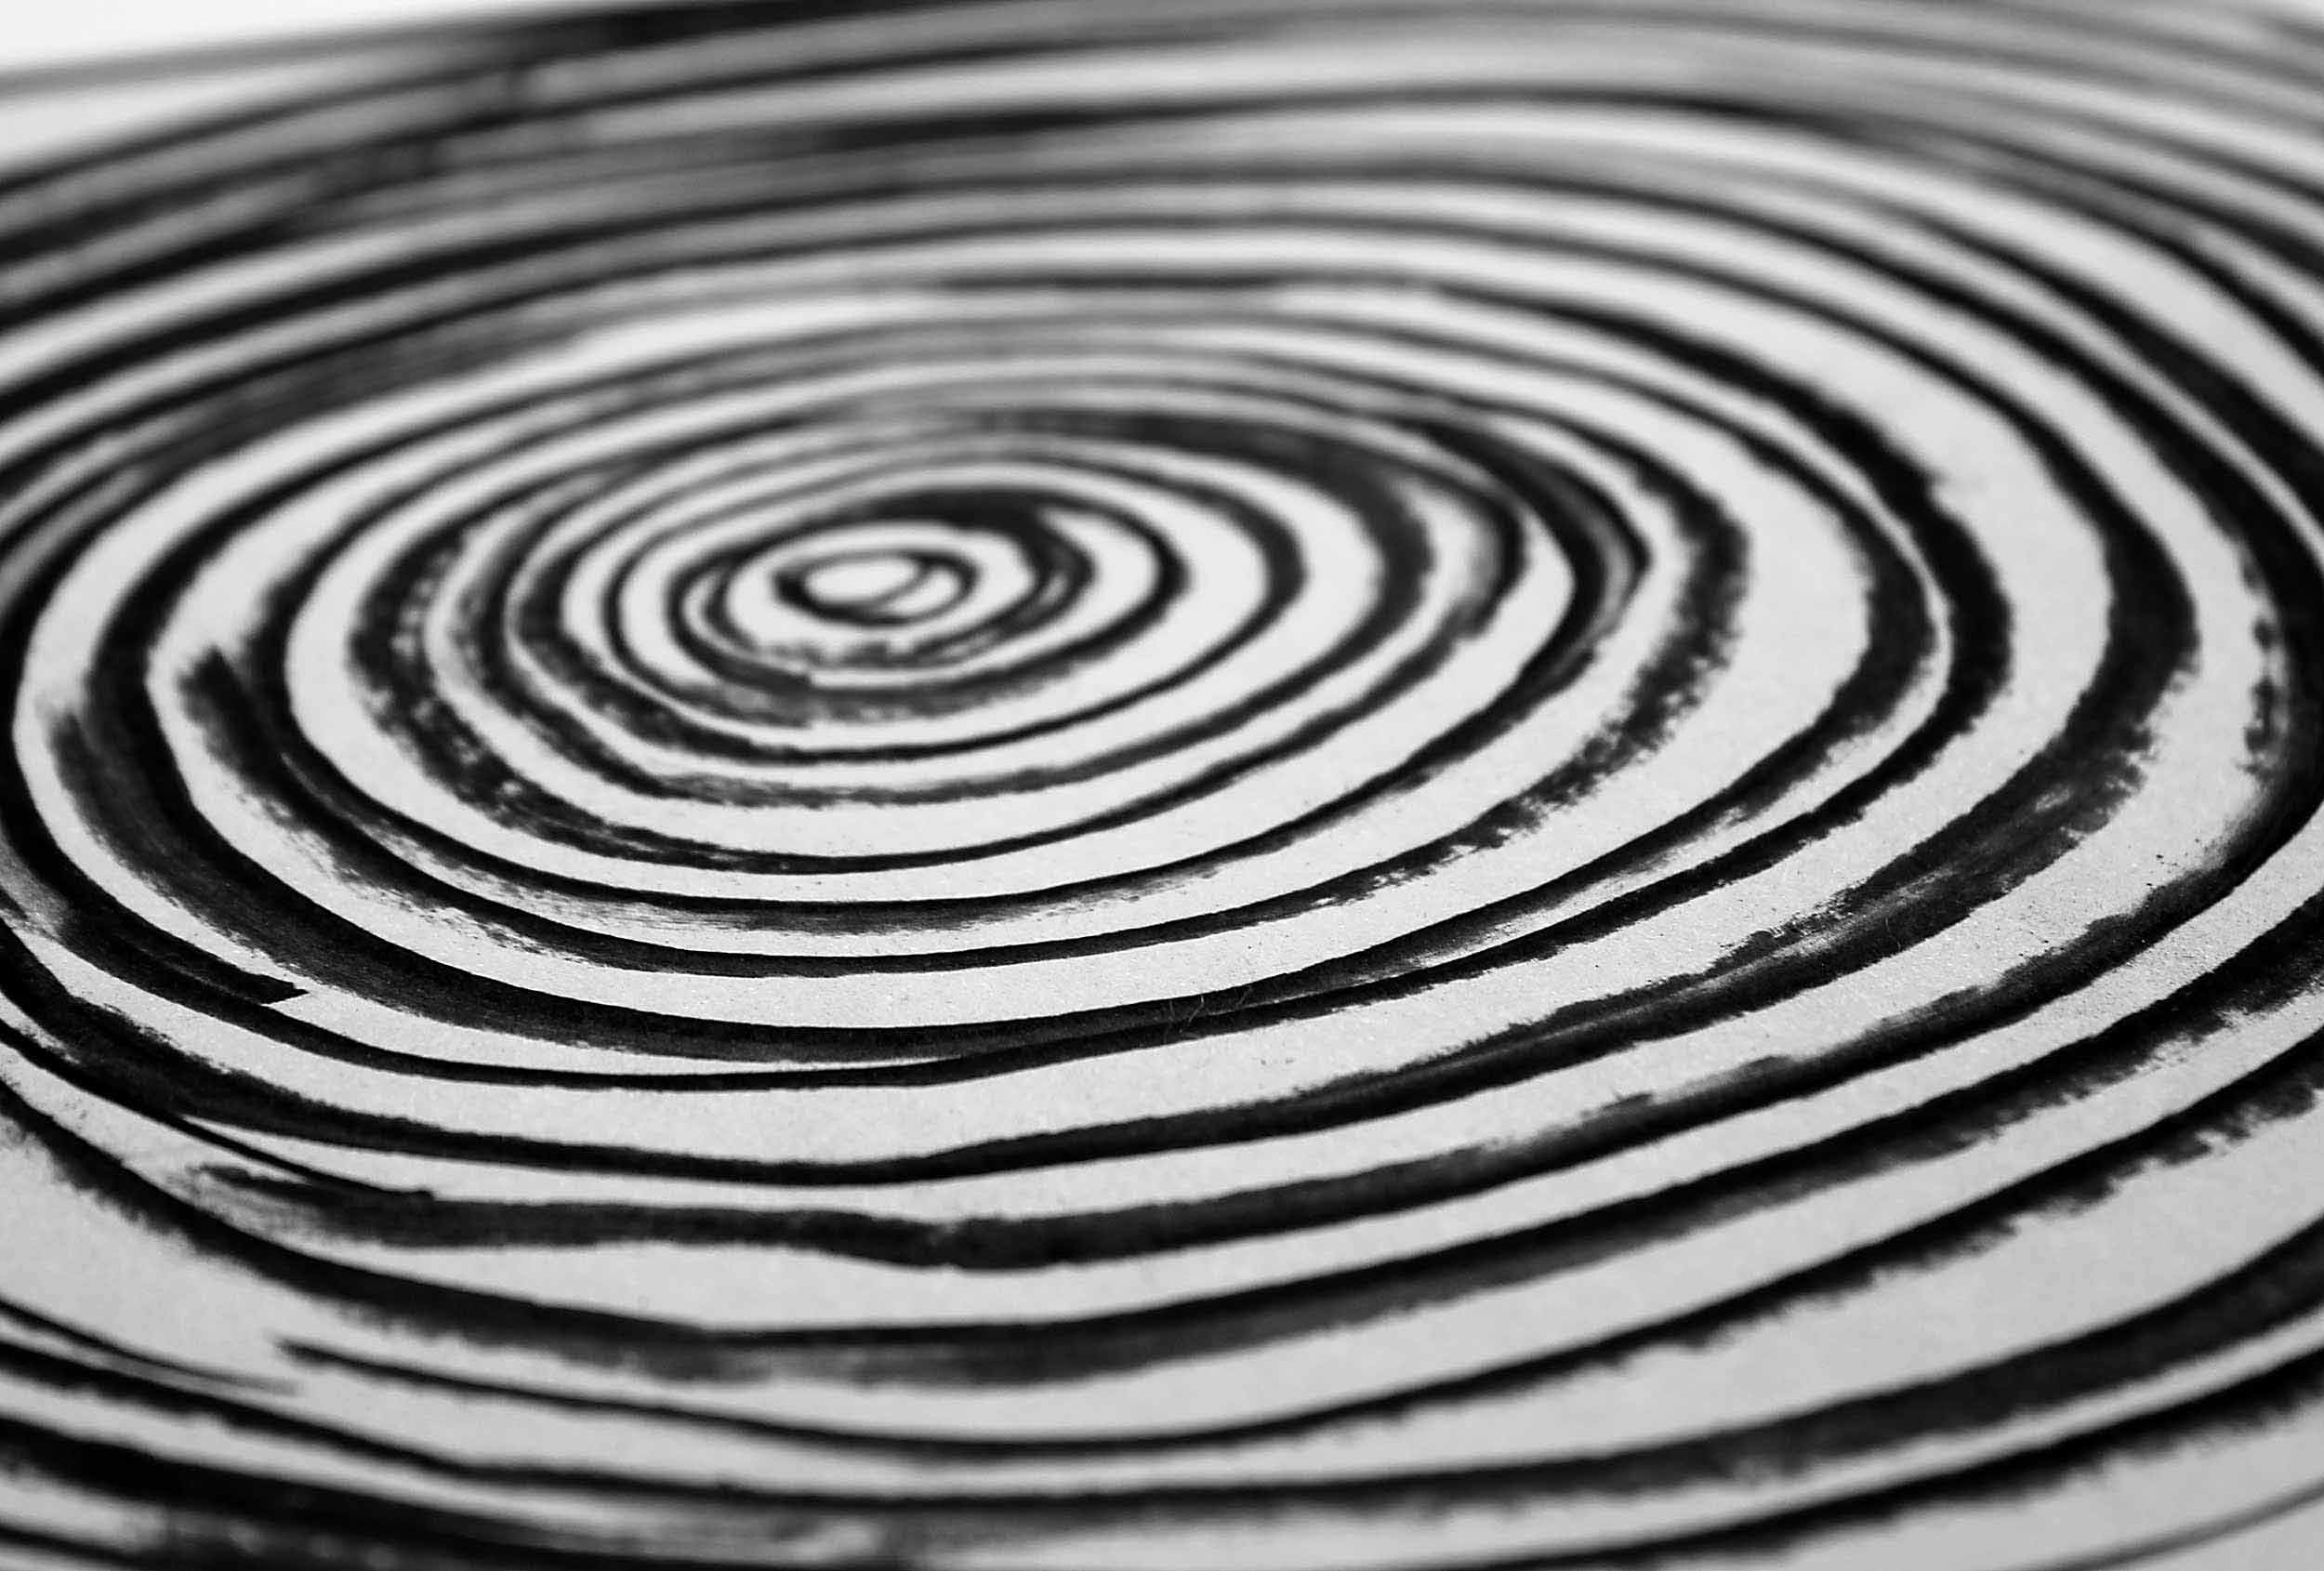 Distil-Studio_Springs-Smokery_Charcoal-Illustration-Circles.jpg